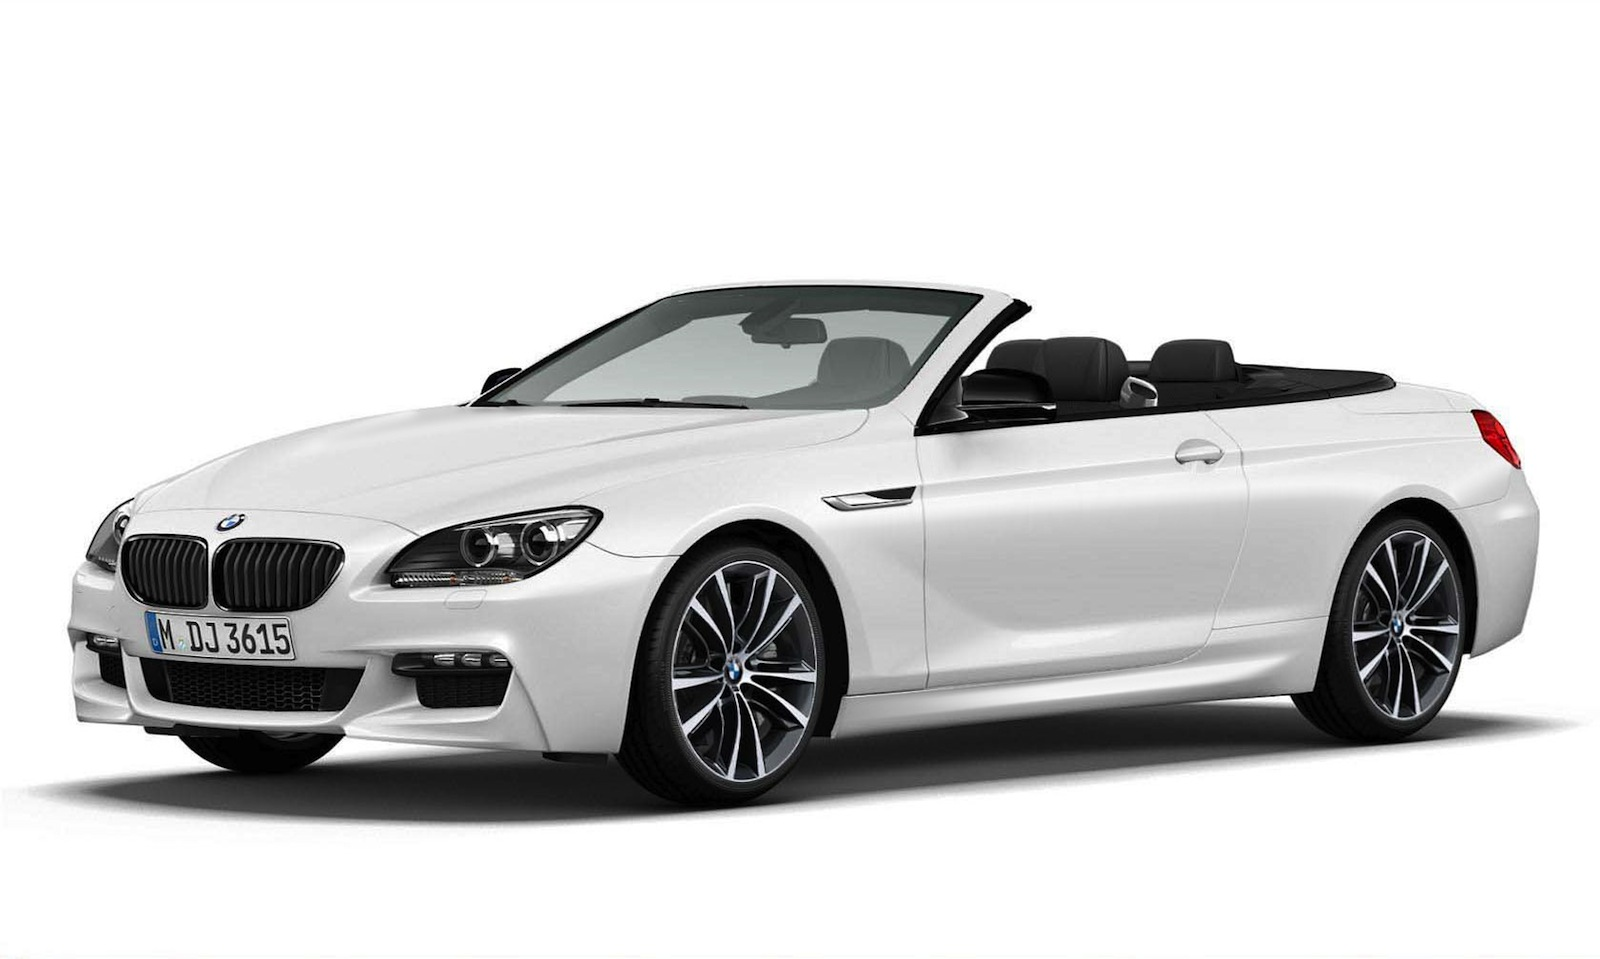 Coupe Series bmw 645 convertible 2014 BMW 6-Series Convertible Coming In Frozen White Edition